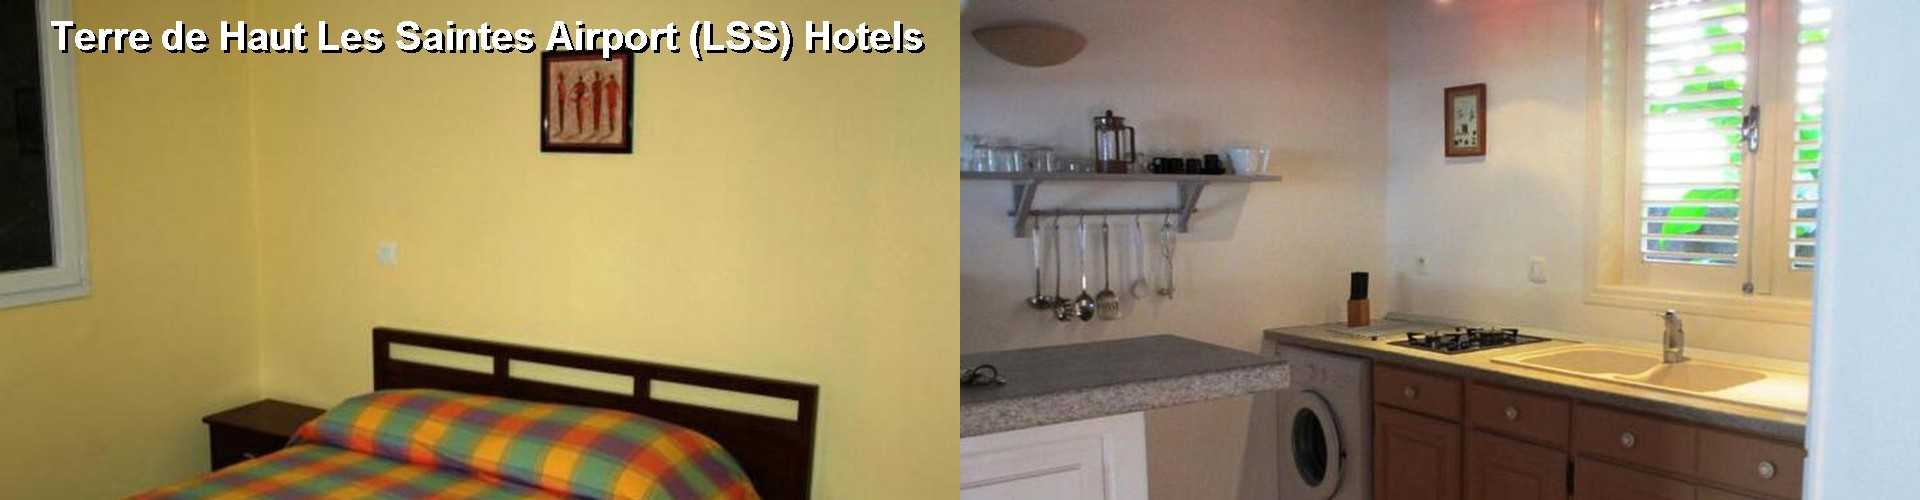 3 Best Hotels near Terre de Haut Les Saintes Airport (LSS)